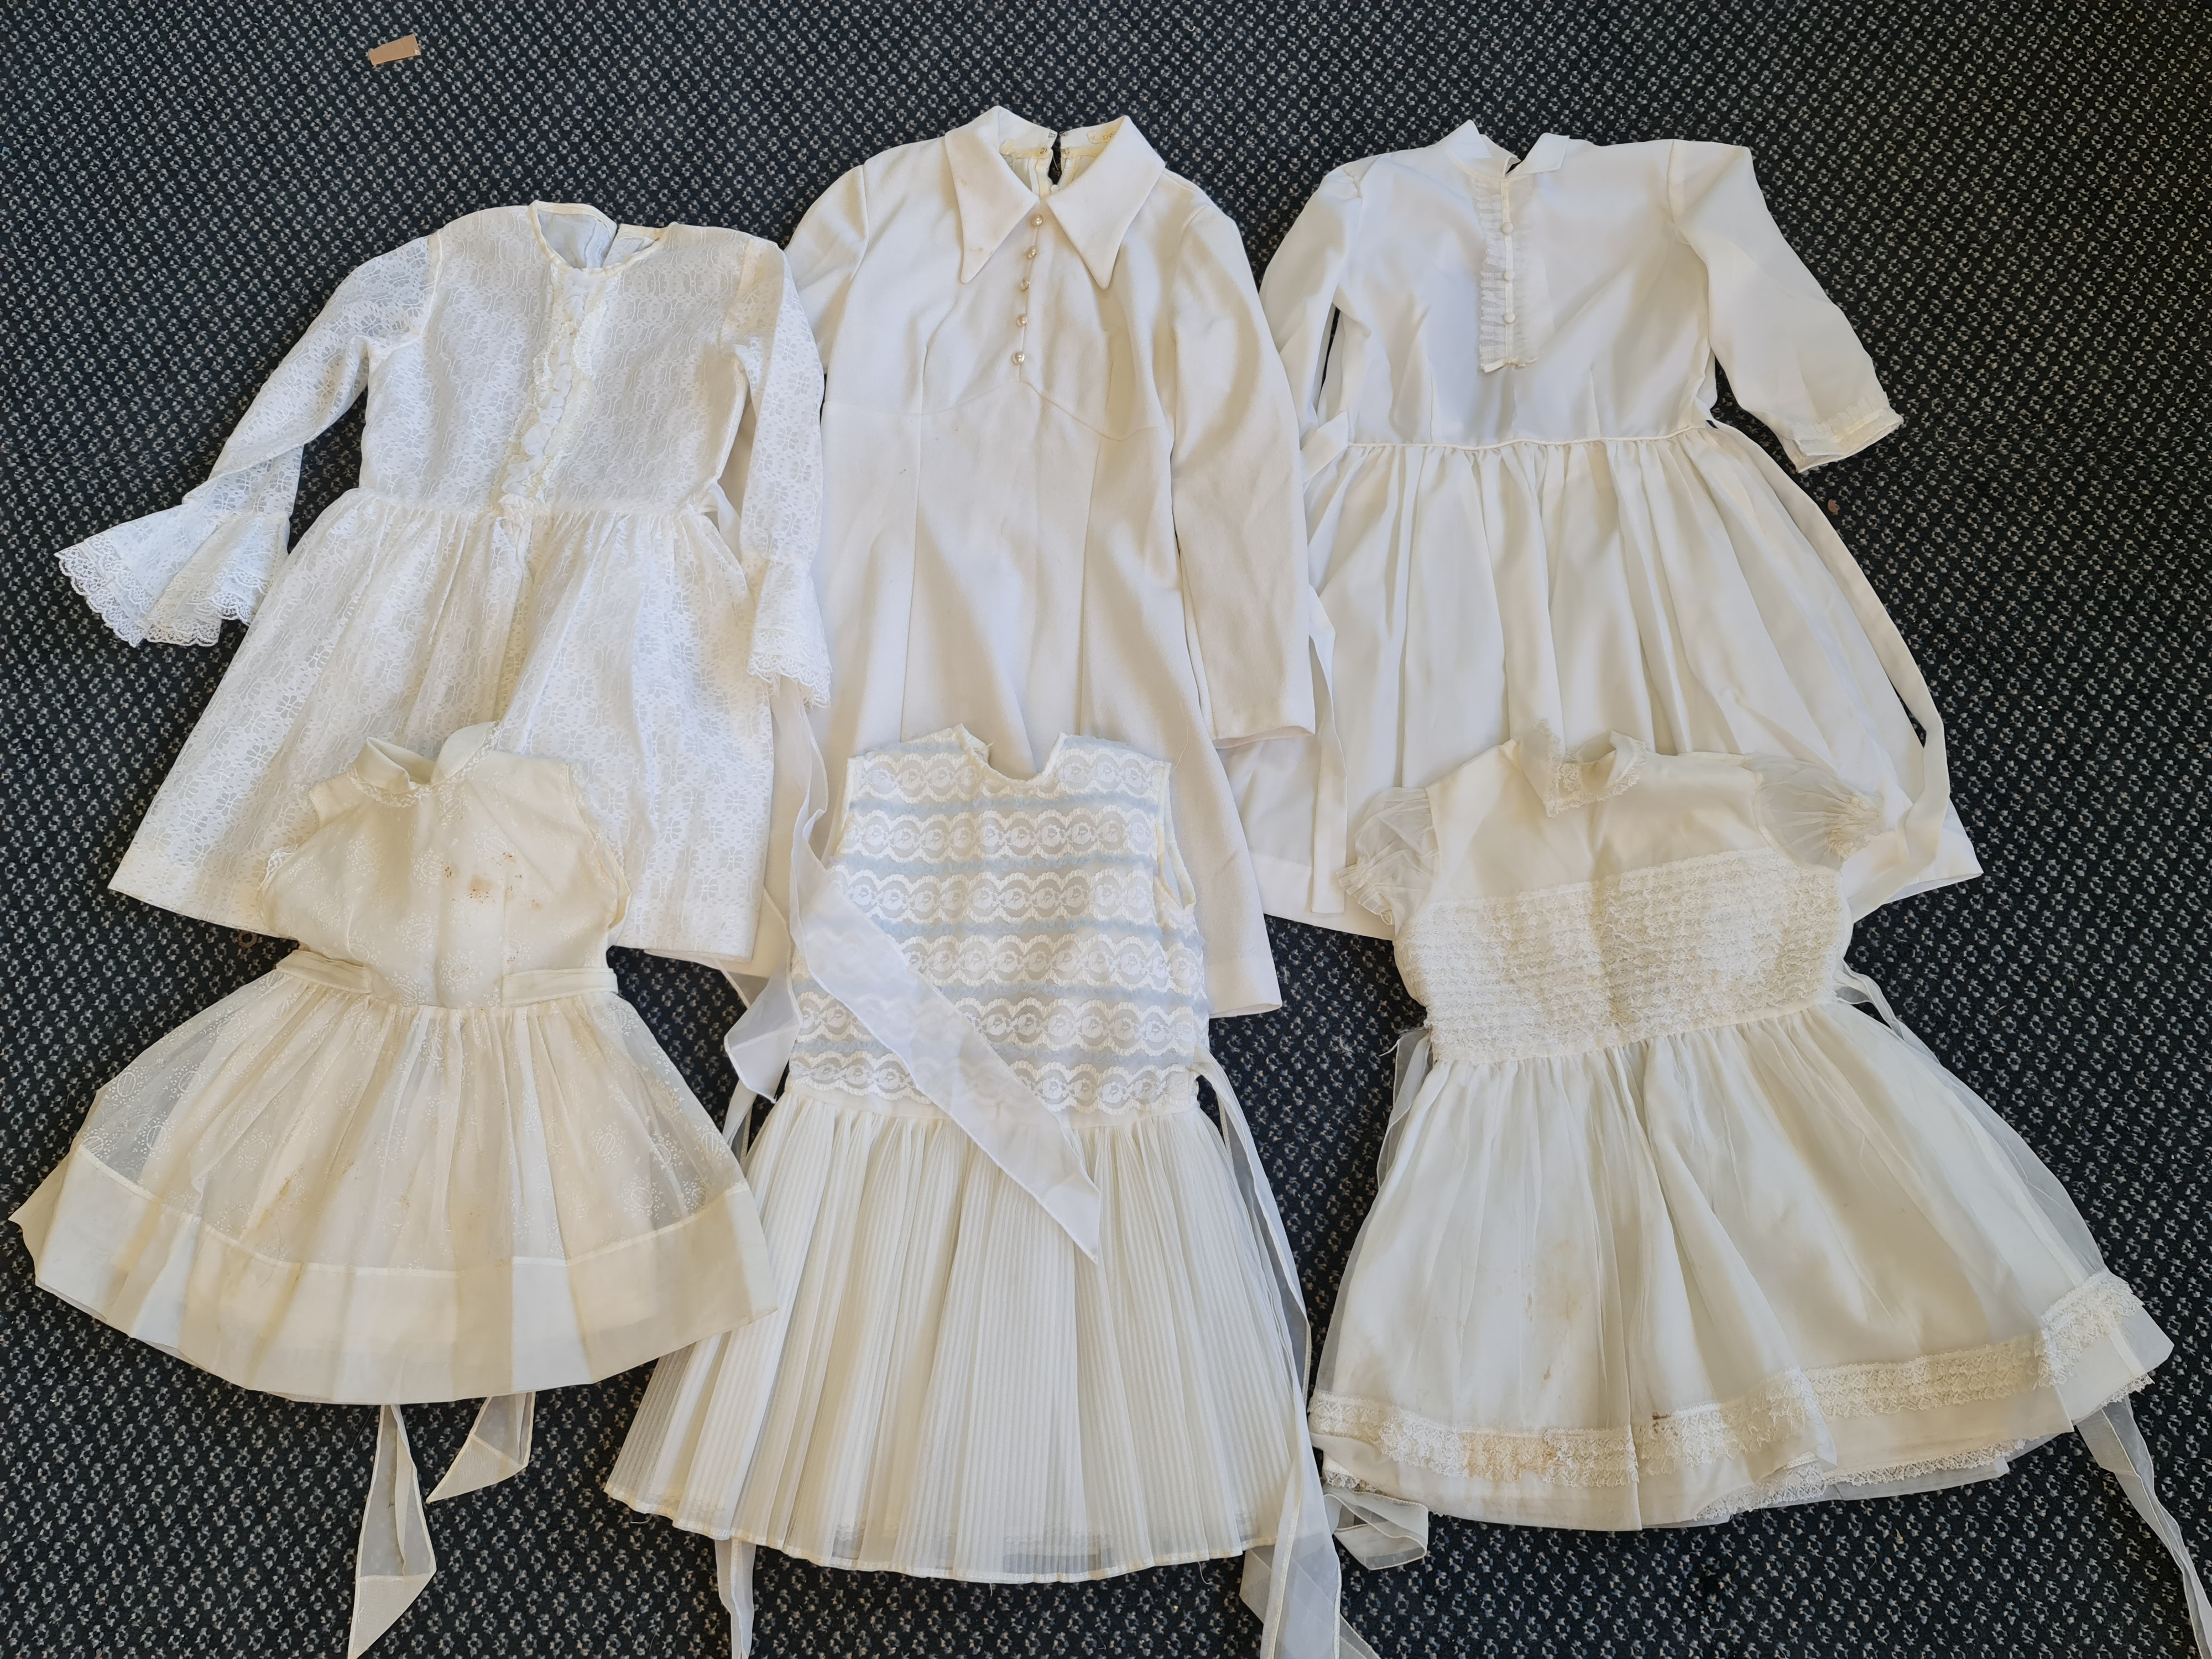 Six white 1960s May Day children's dresses. IMPORTANT: Online viewing and bidding only. No in person